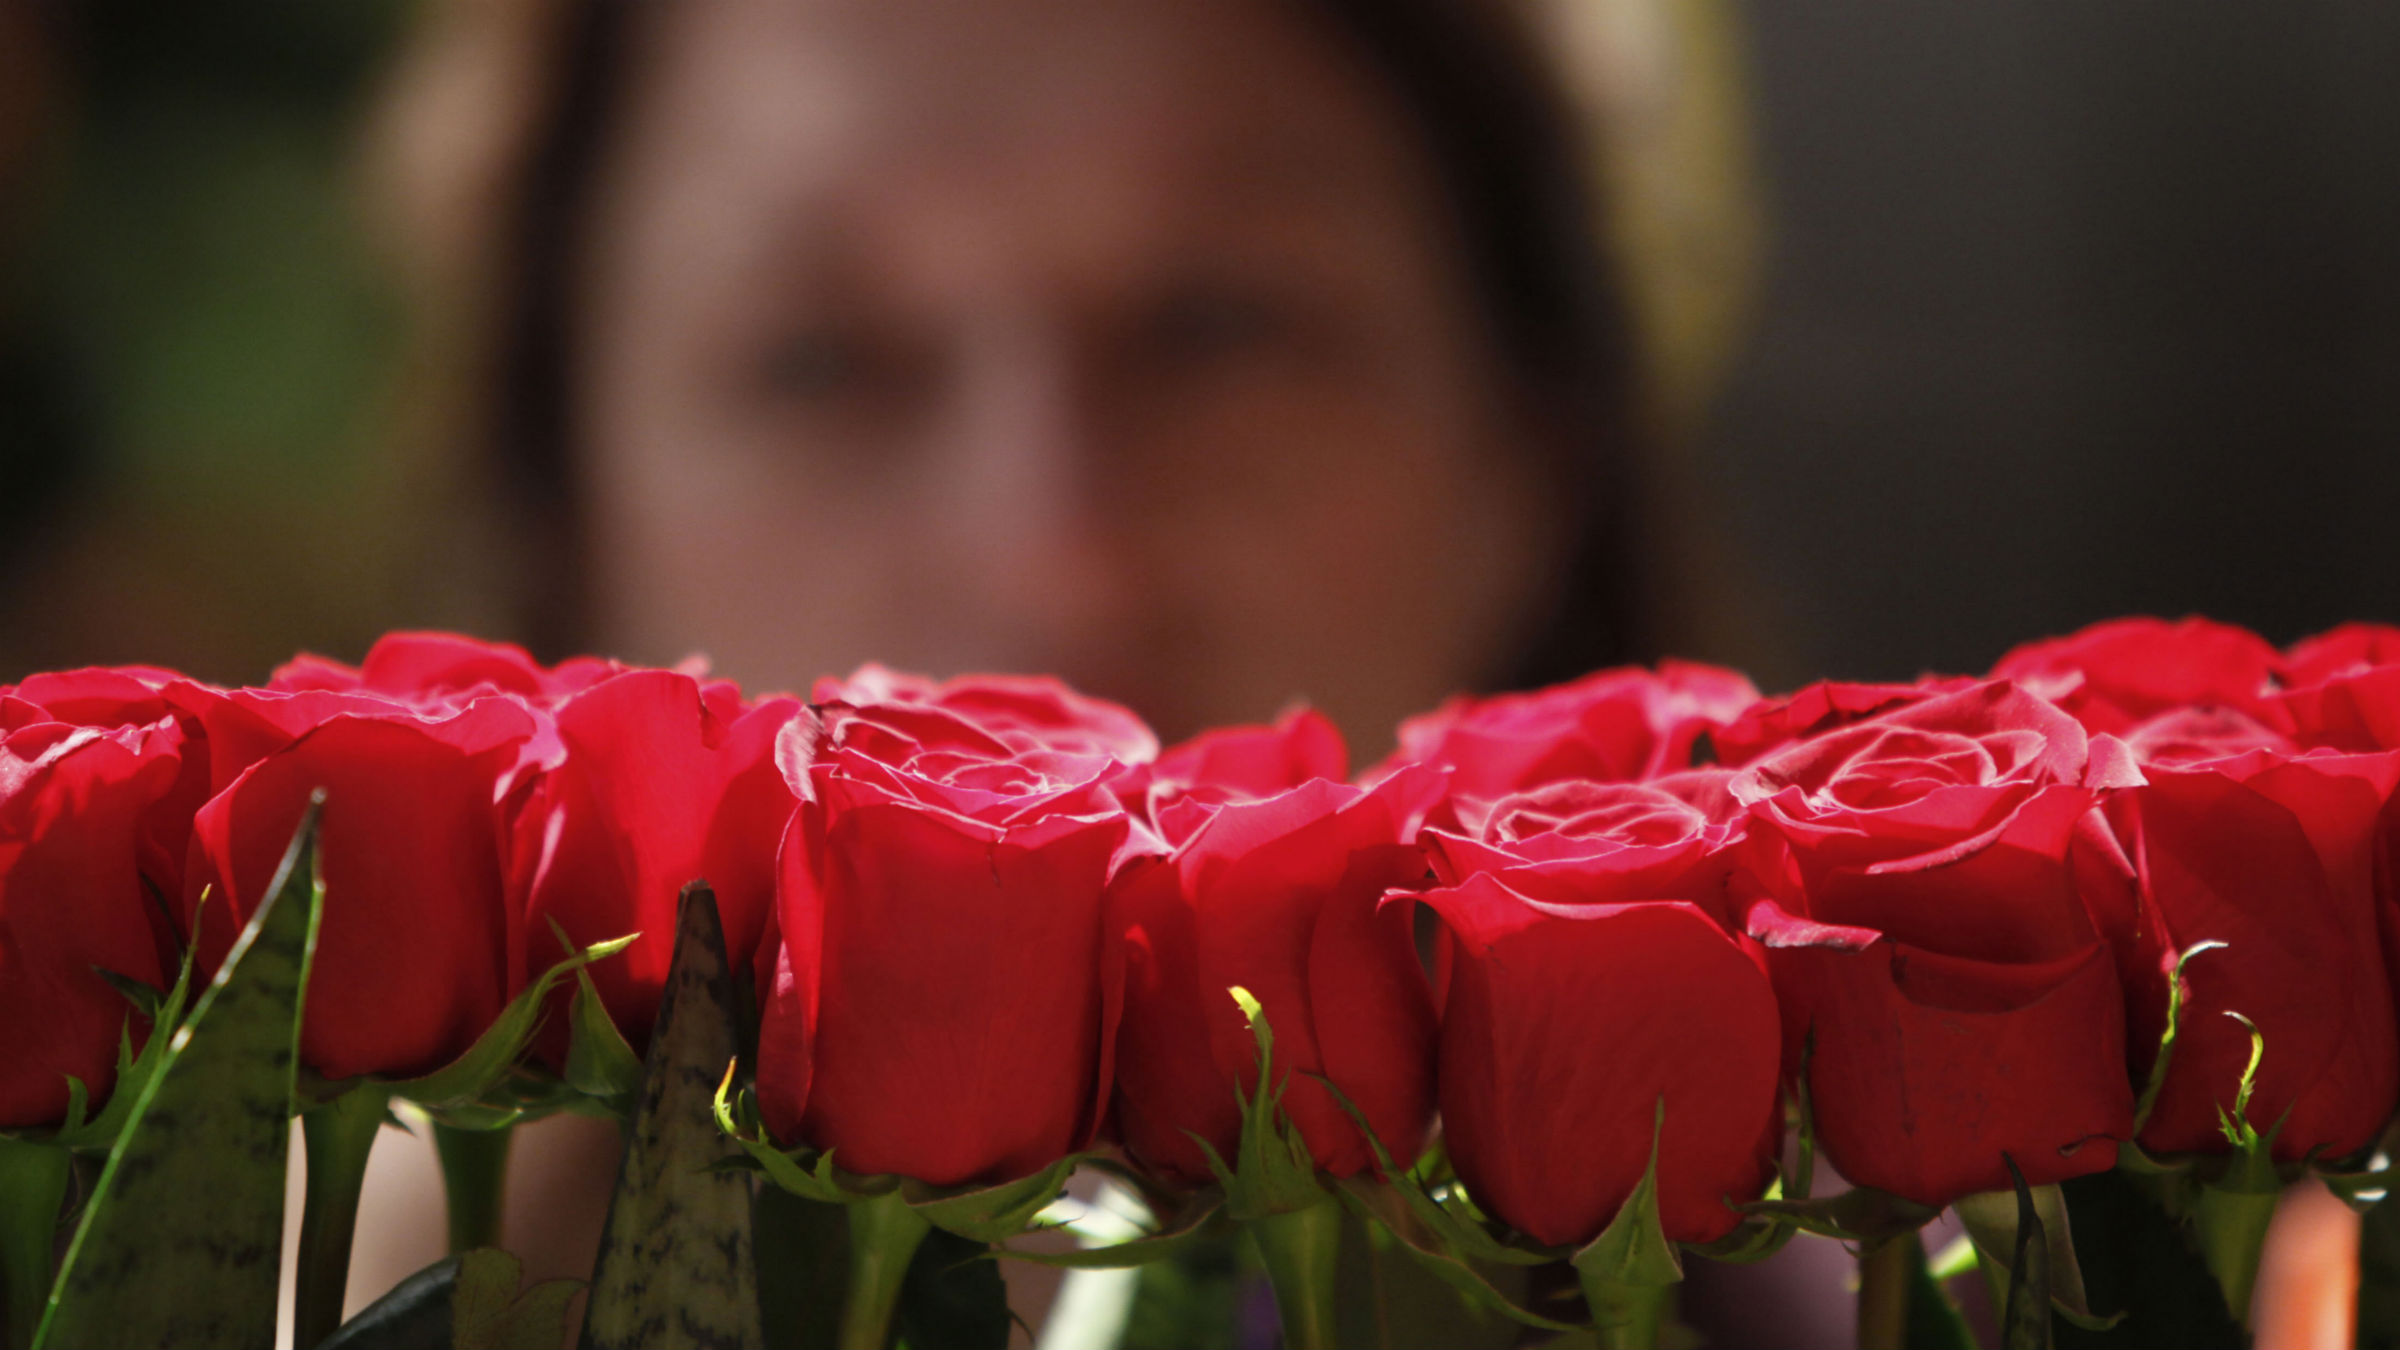 A floral designer arranges roses in preparation for the 2010 Philadelphia Flower show at the Pennsylvania Convention Center in Philadelphia, Friday, Feb. 26, 2010. The theme of the 2010 show, which is scheduled to open Feb. 28 and run through March 7, is Passport to the World.